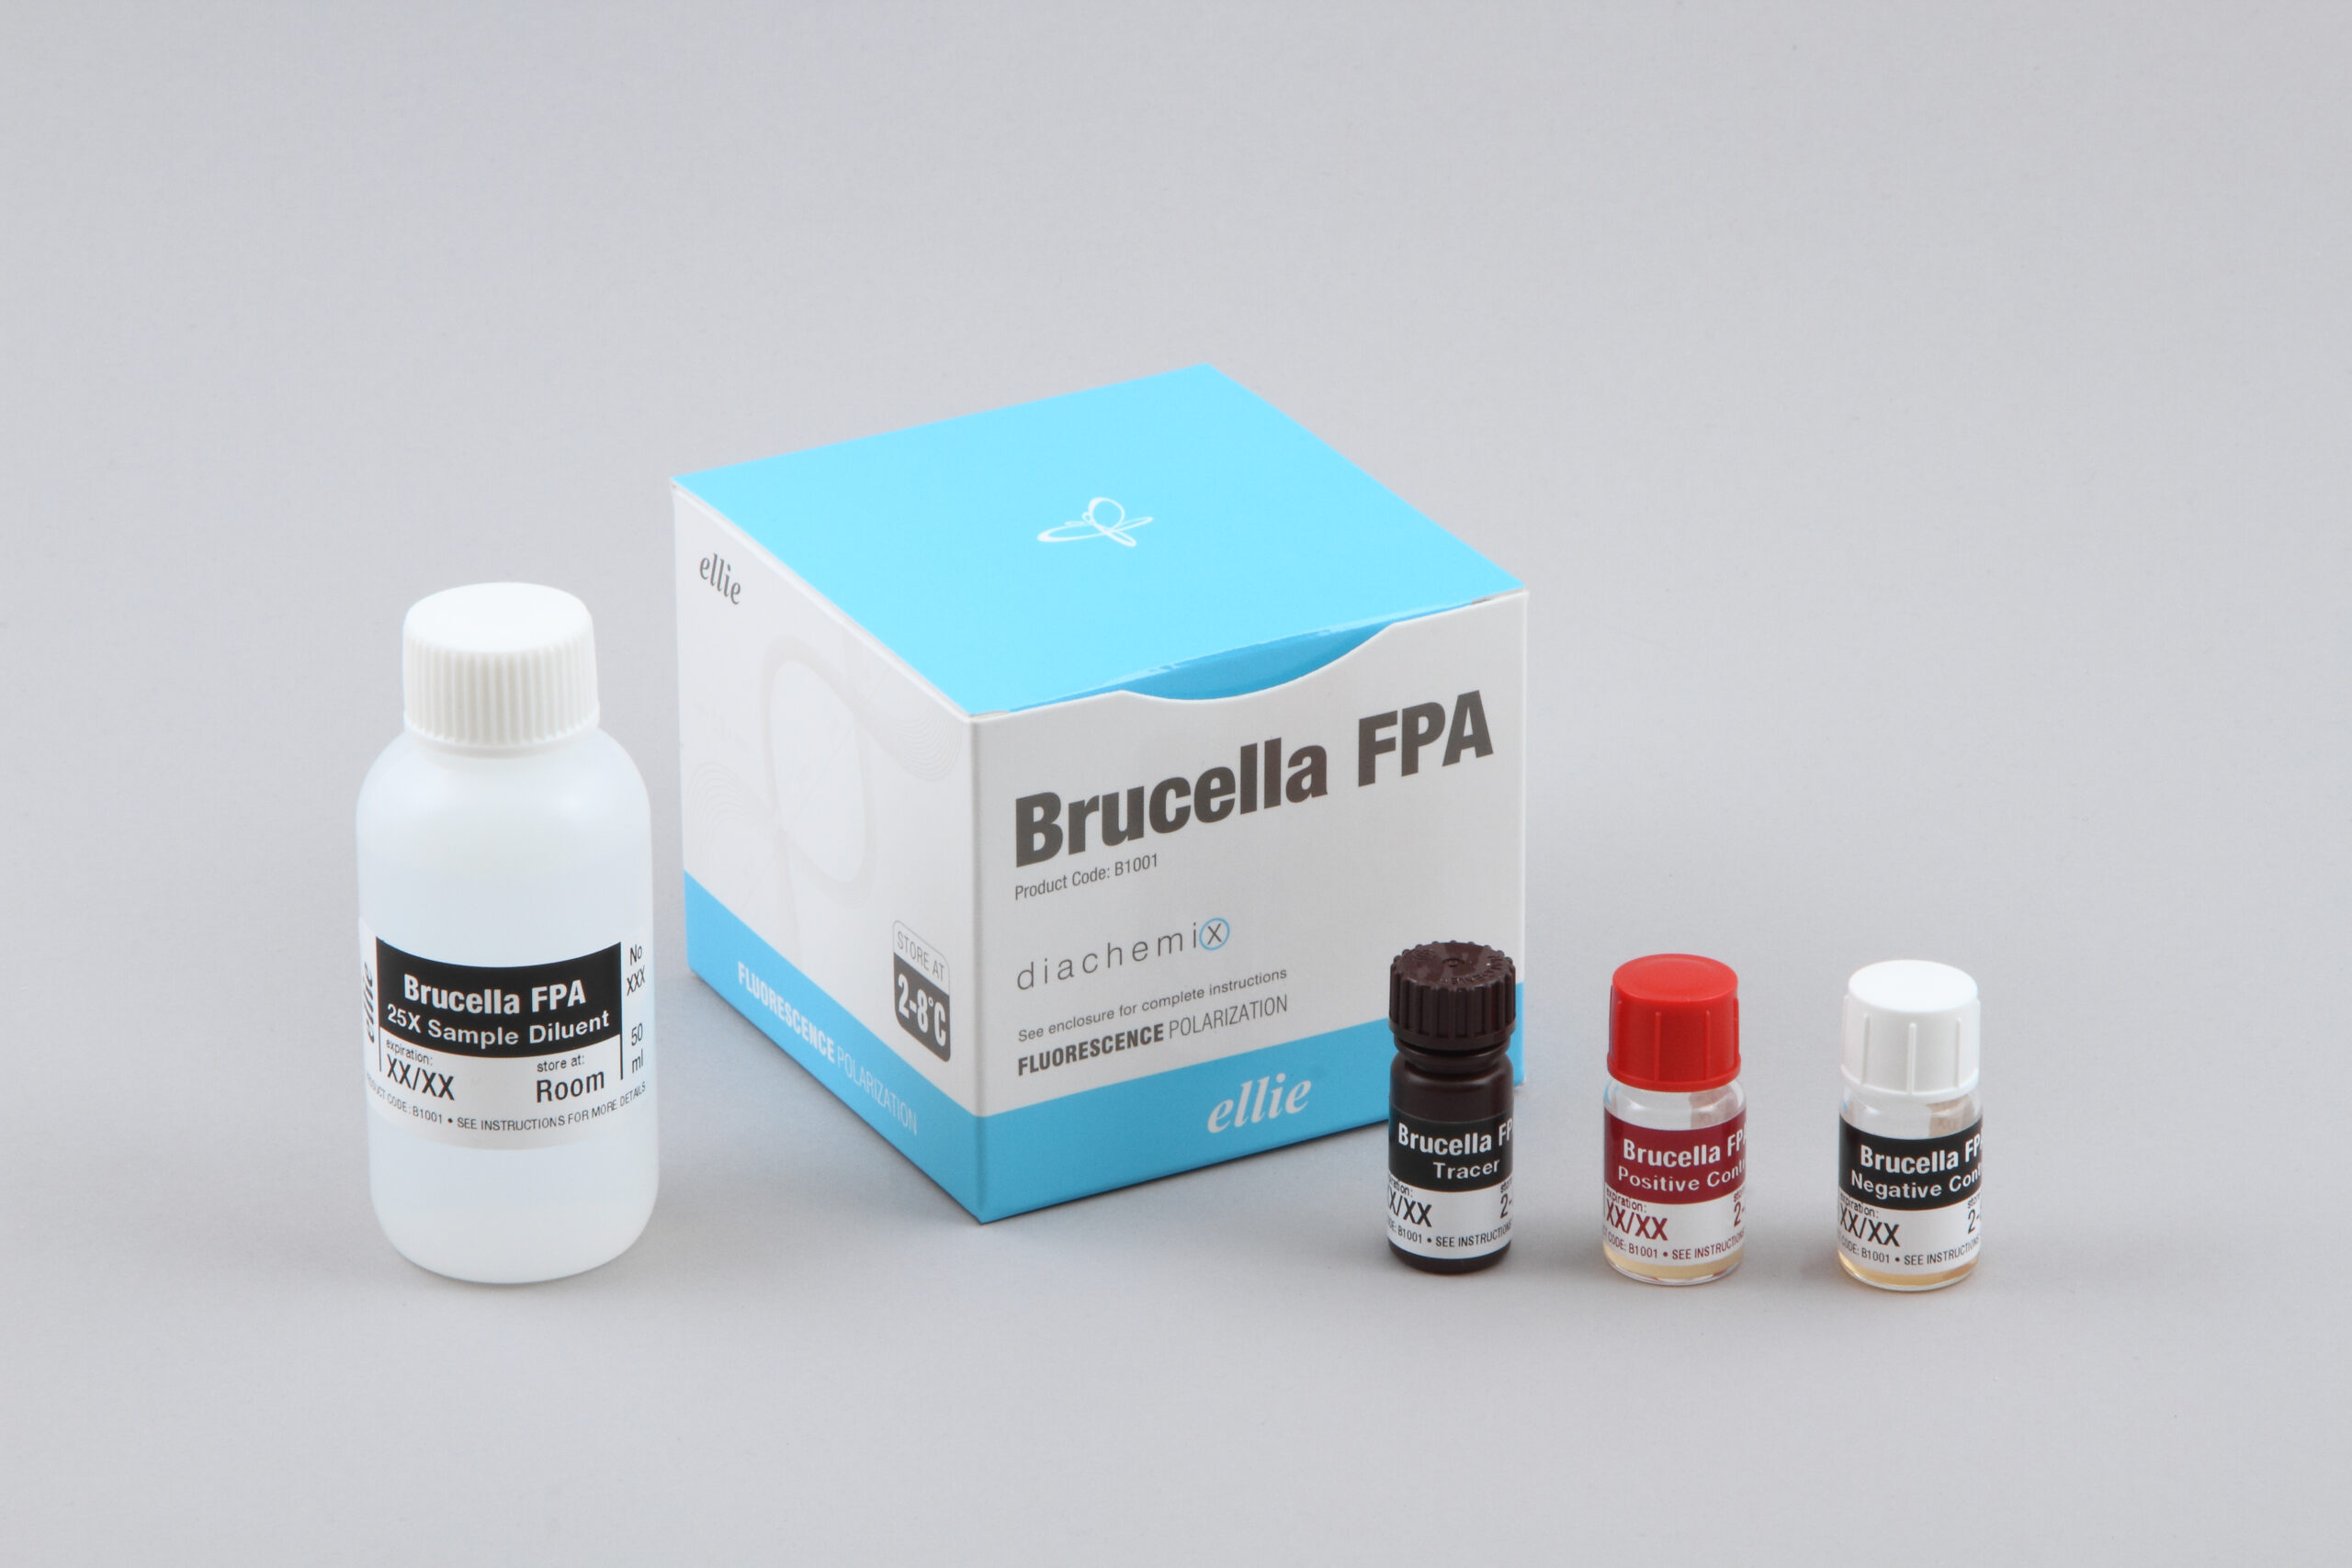 Brucella FPA kit in English